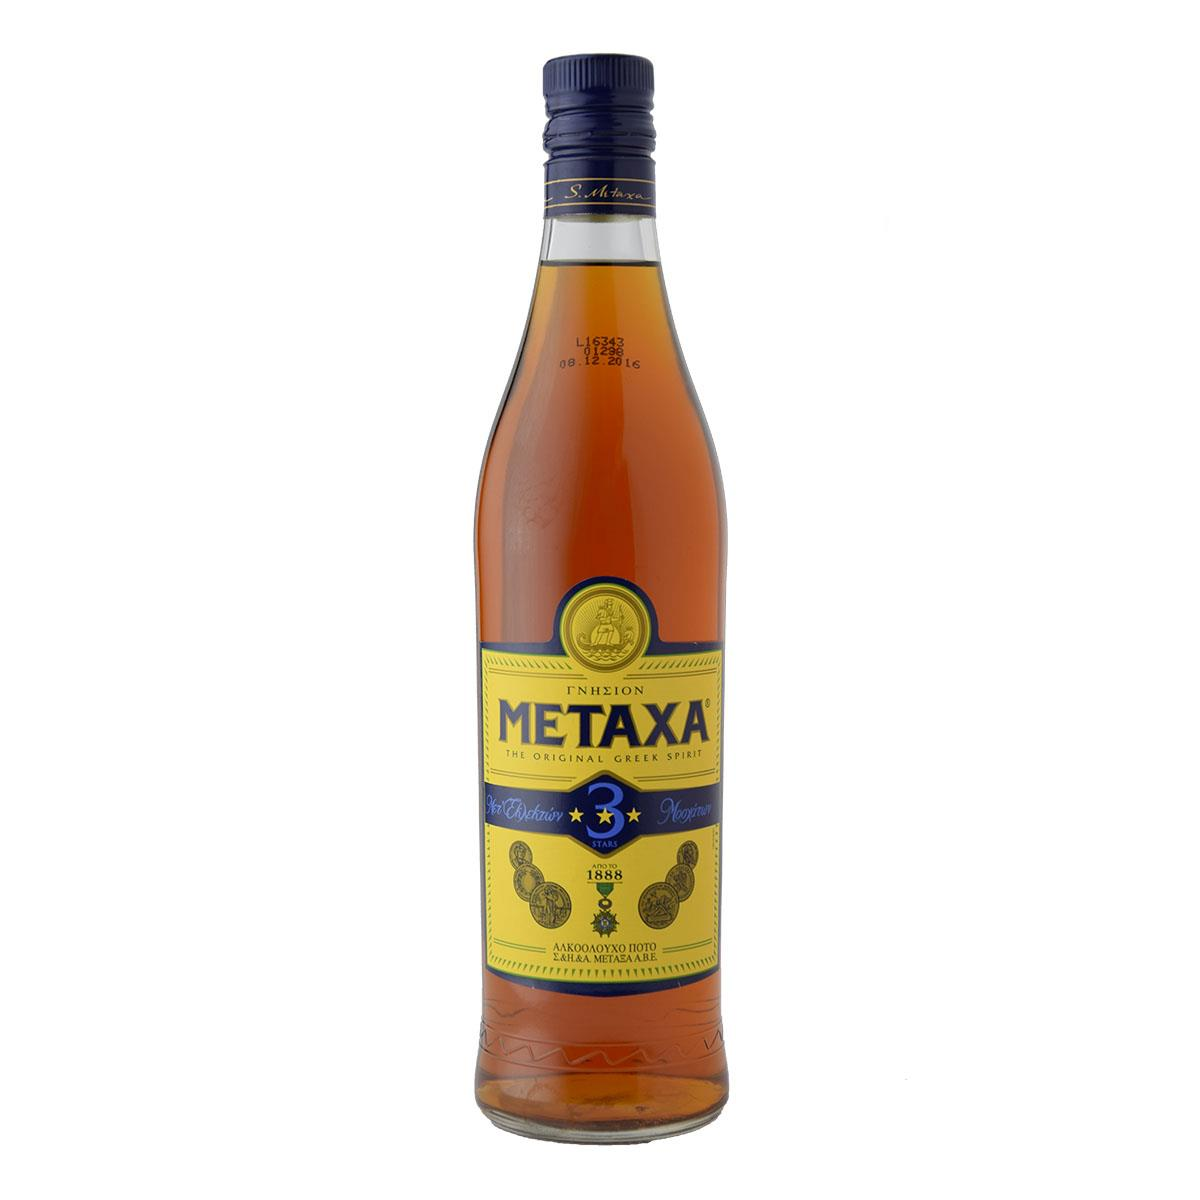 Metaxa 3* 700ml